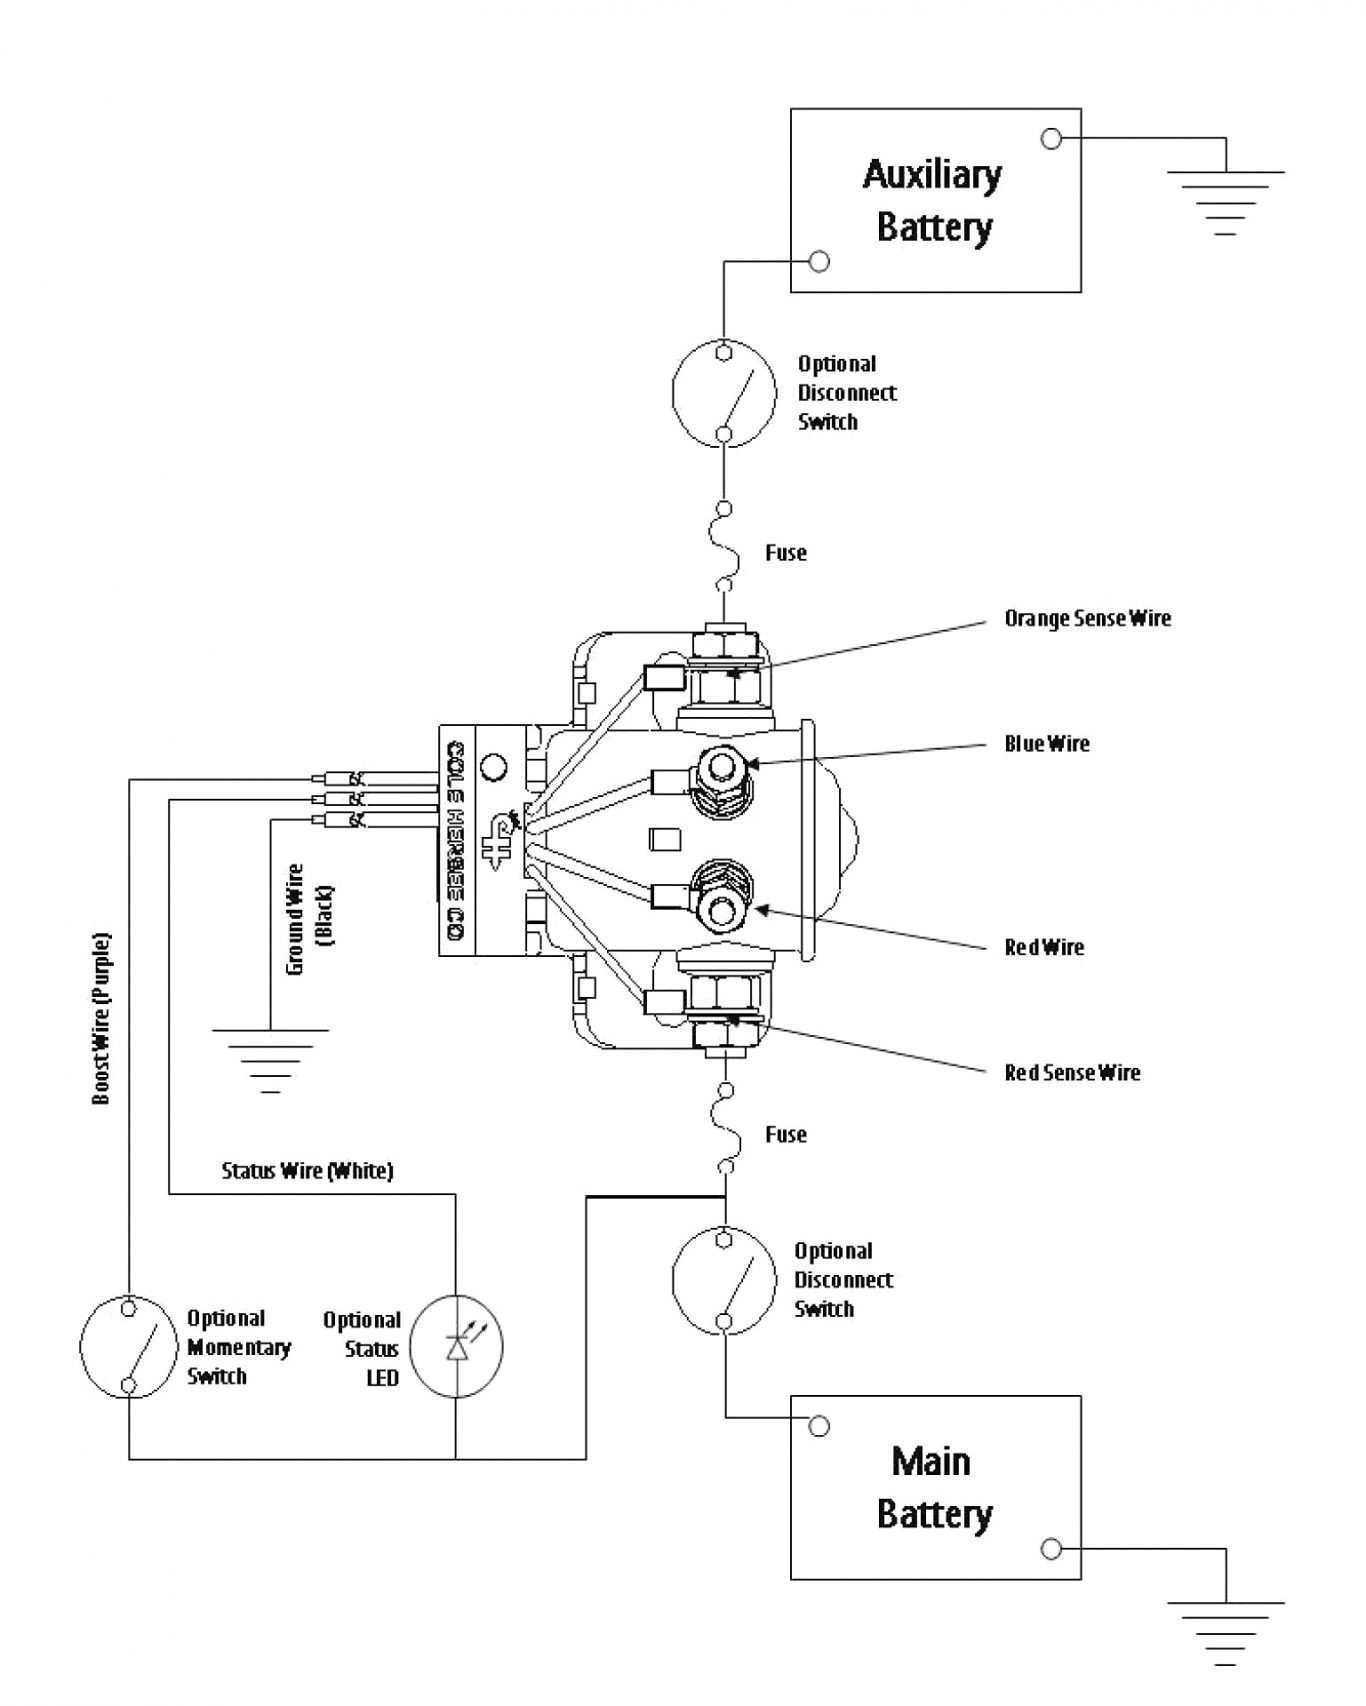 Dual Battery Wiring Diagram Car Audio Battery Wiring Diagram Wiring Diagram Of Dual Battery Wiring Diagram Car Audio